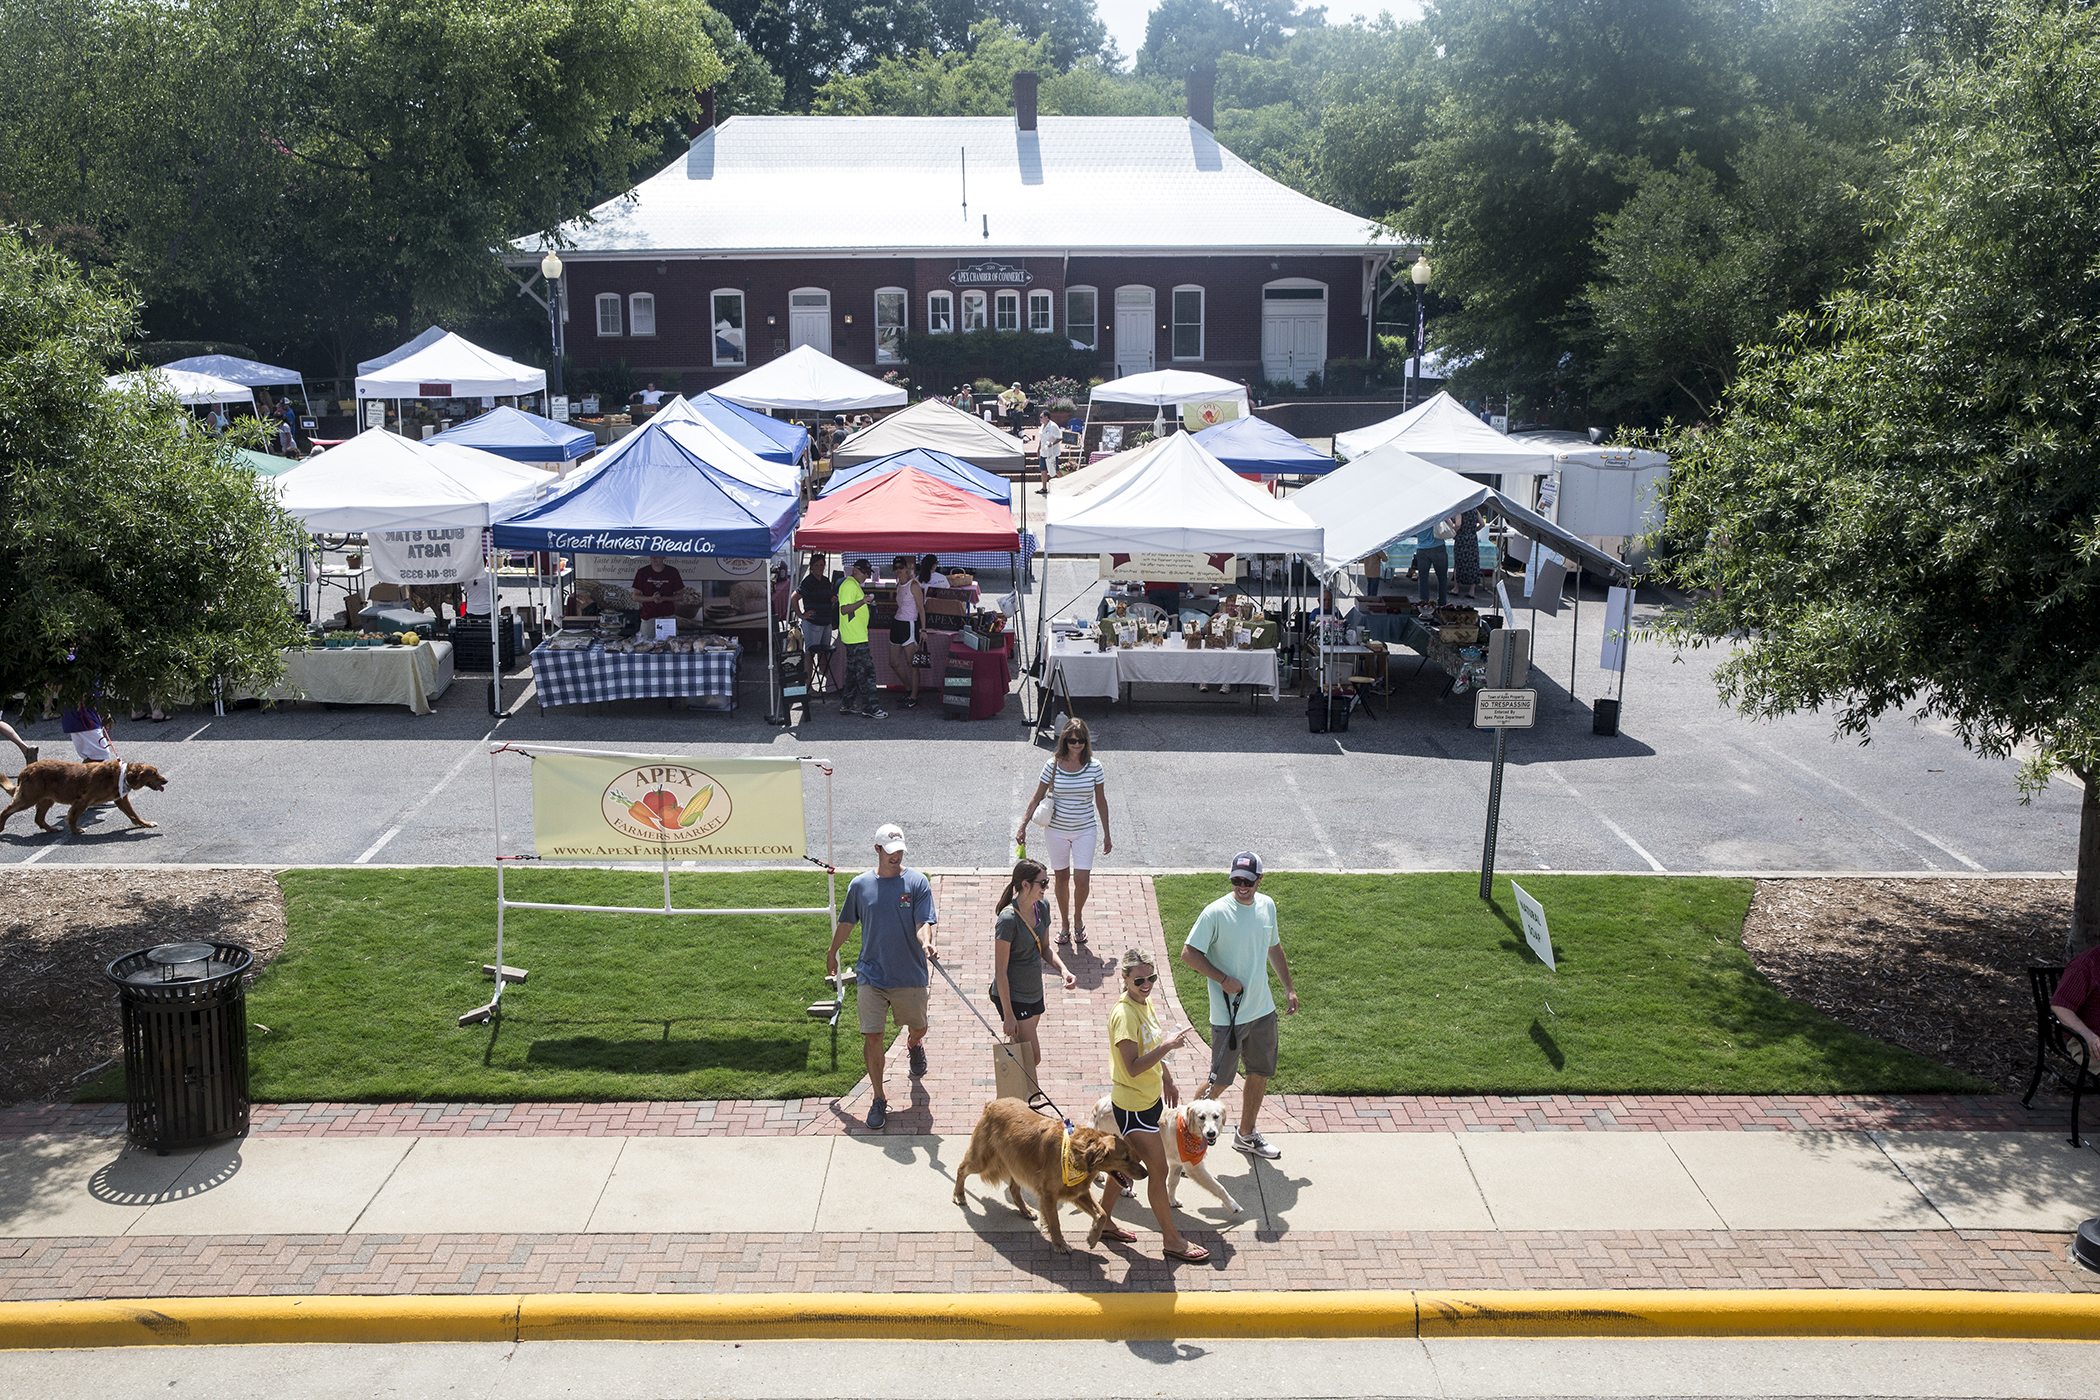 The Apex Farmers Market in downtown Apex, NC